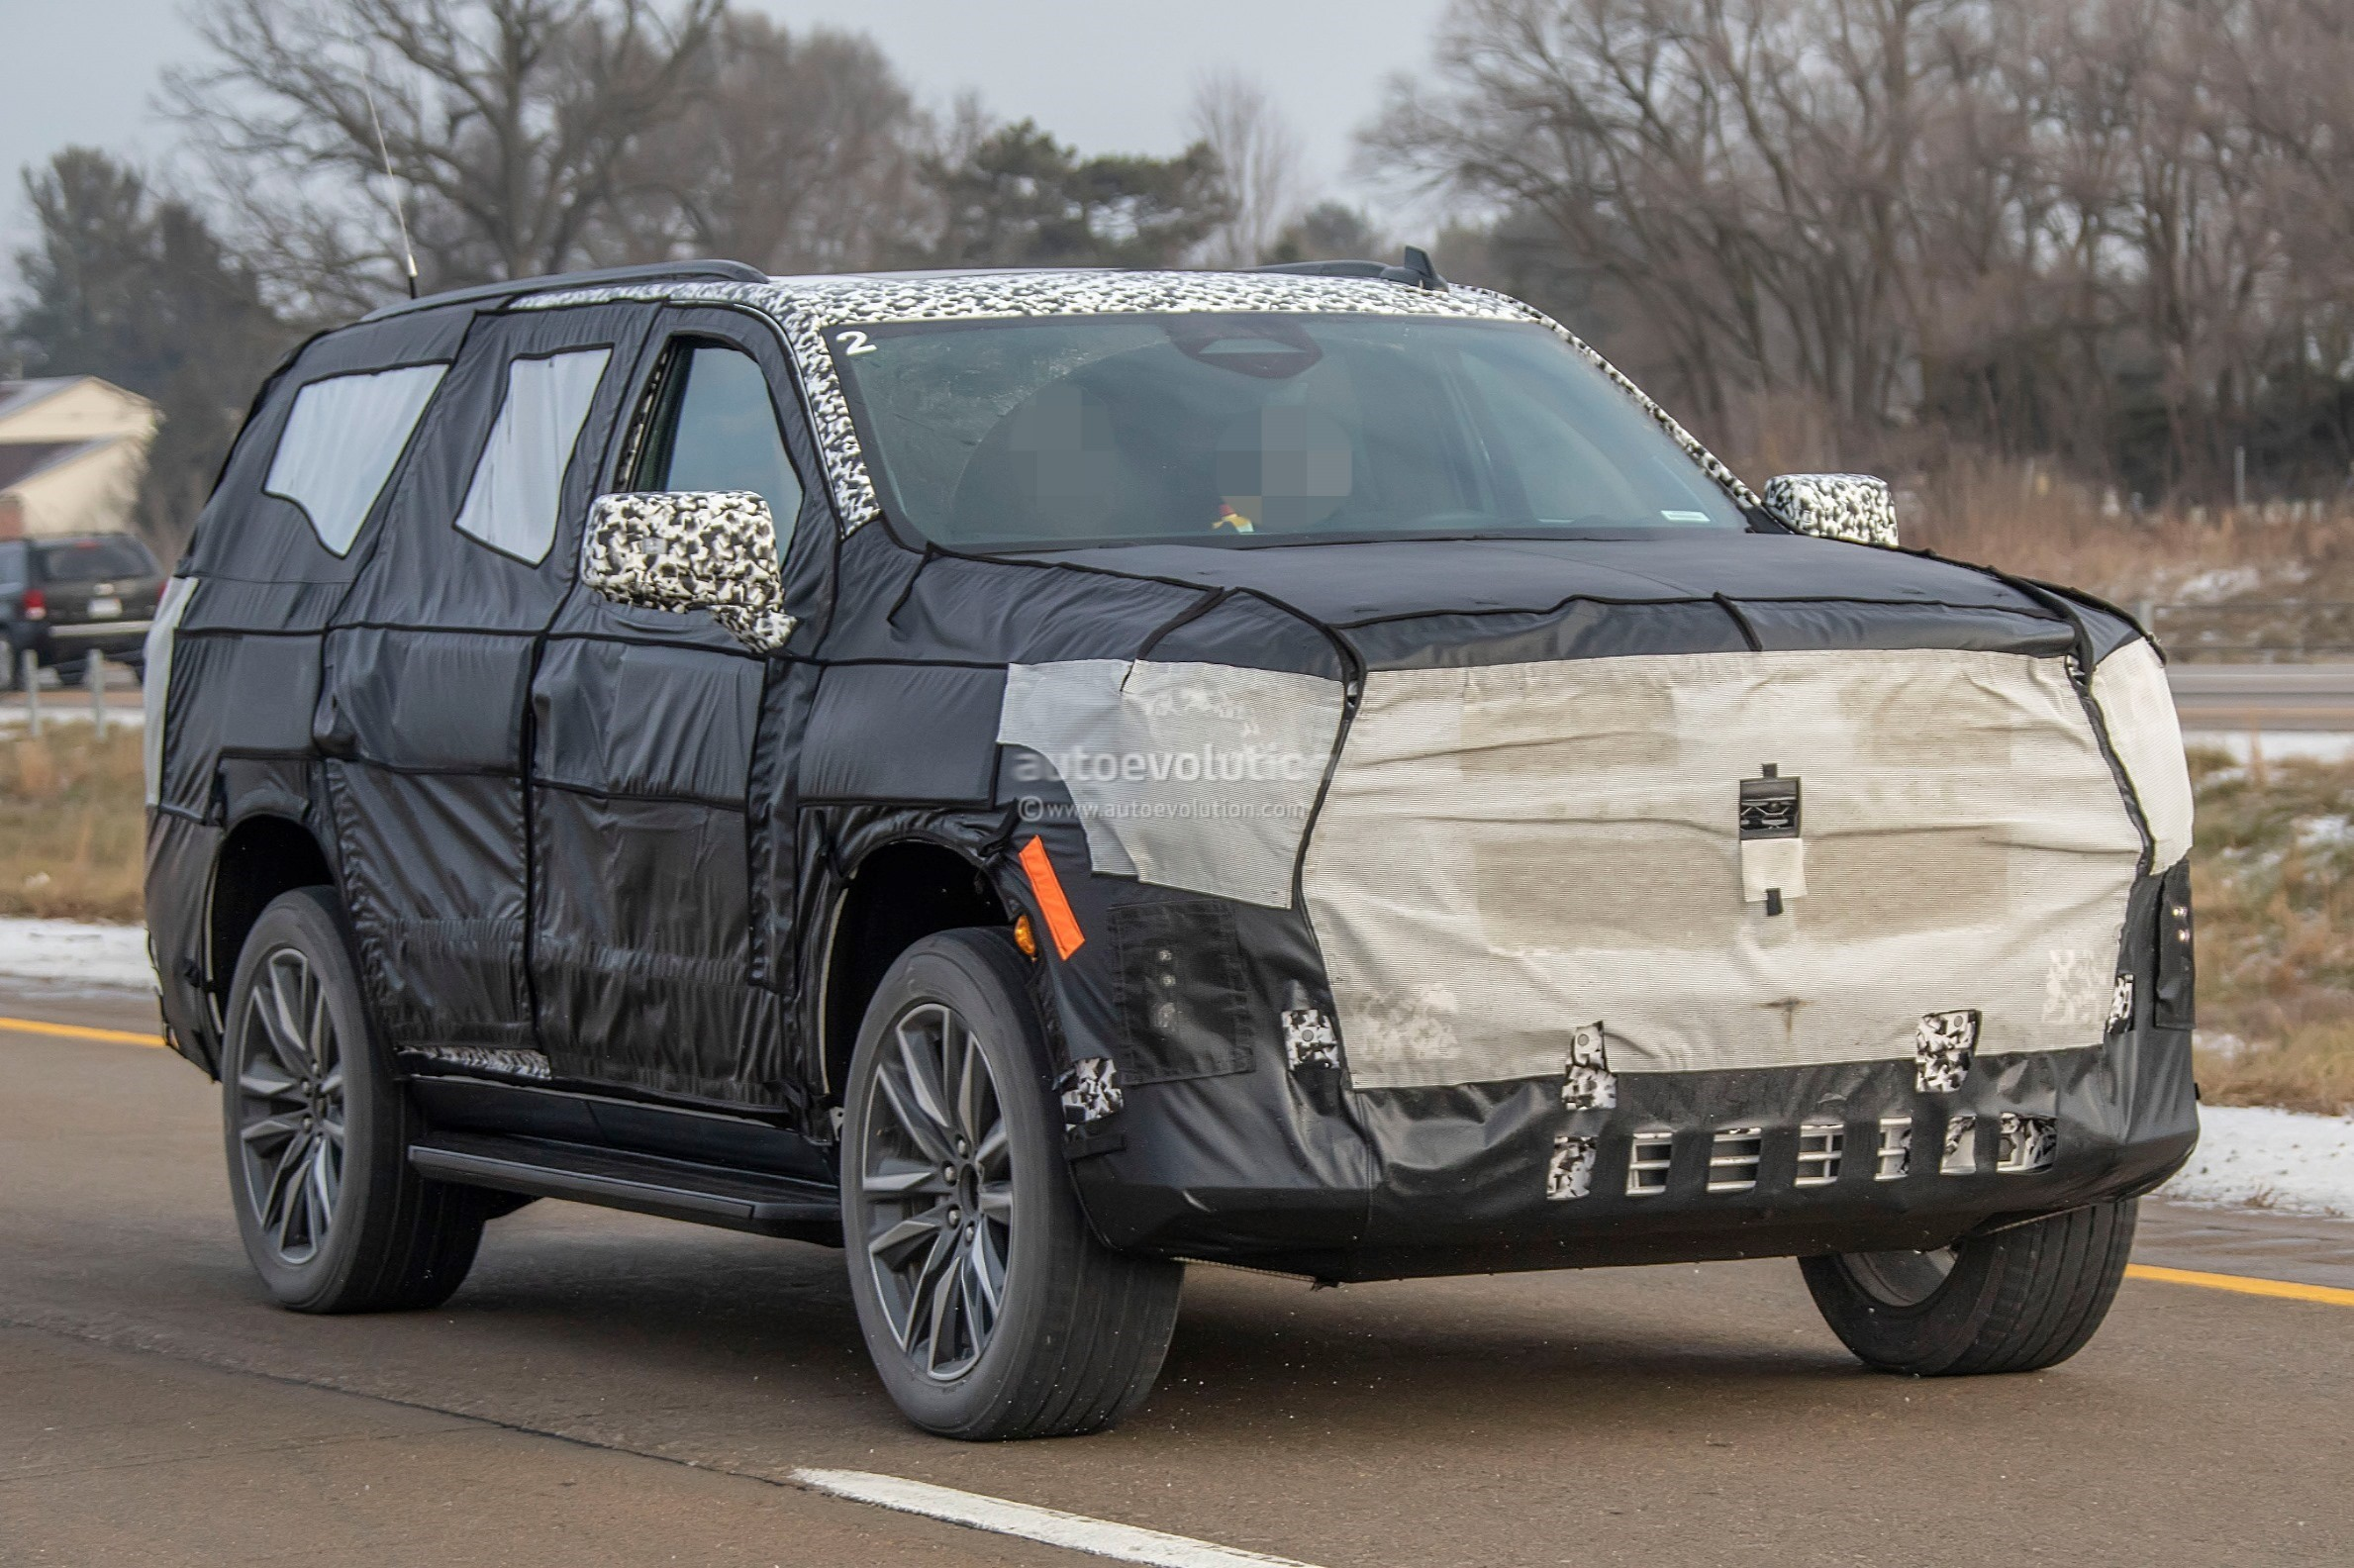 2020 Cadillac Escalade Spied With Makeshift Dodge Ram ...